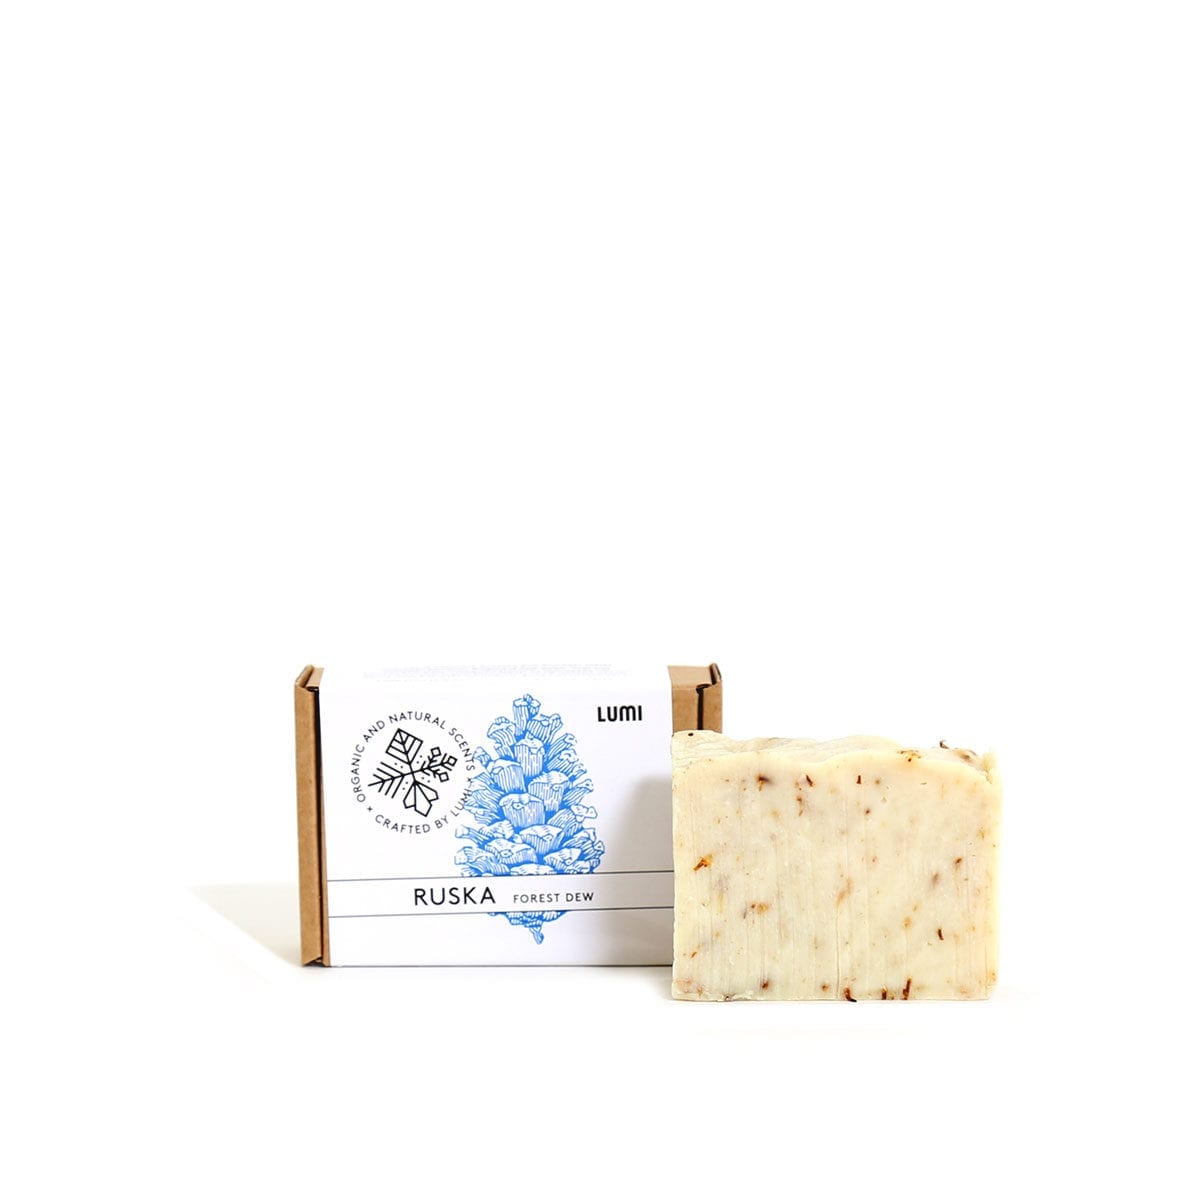 "LUMI Ruska ""Forest Dew"" soap in a botanical scent, reminding you of the foraging forest adventures."